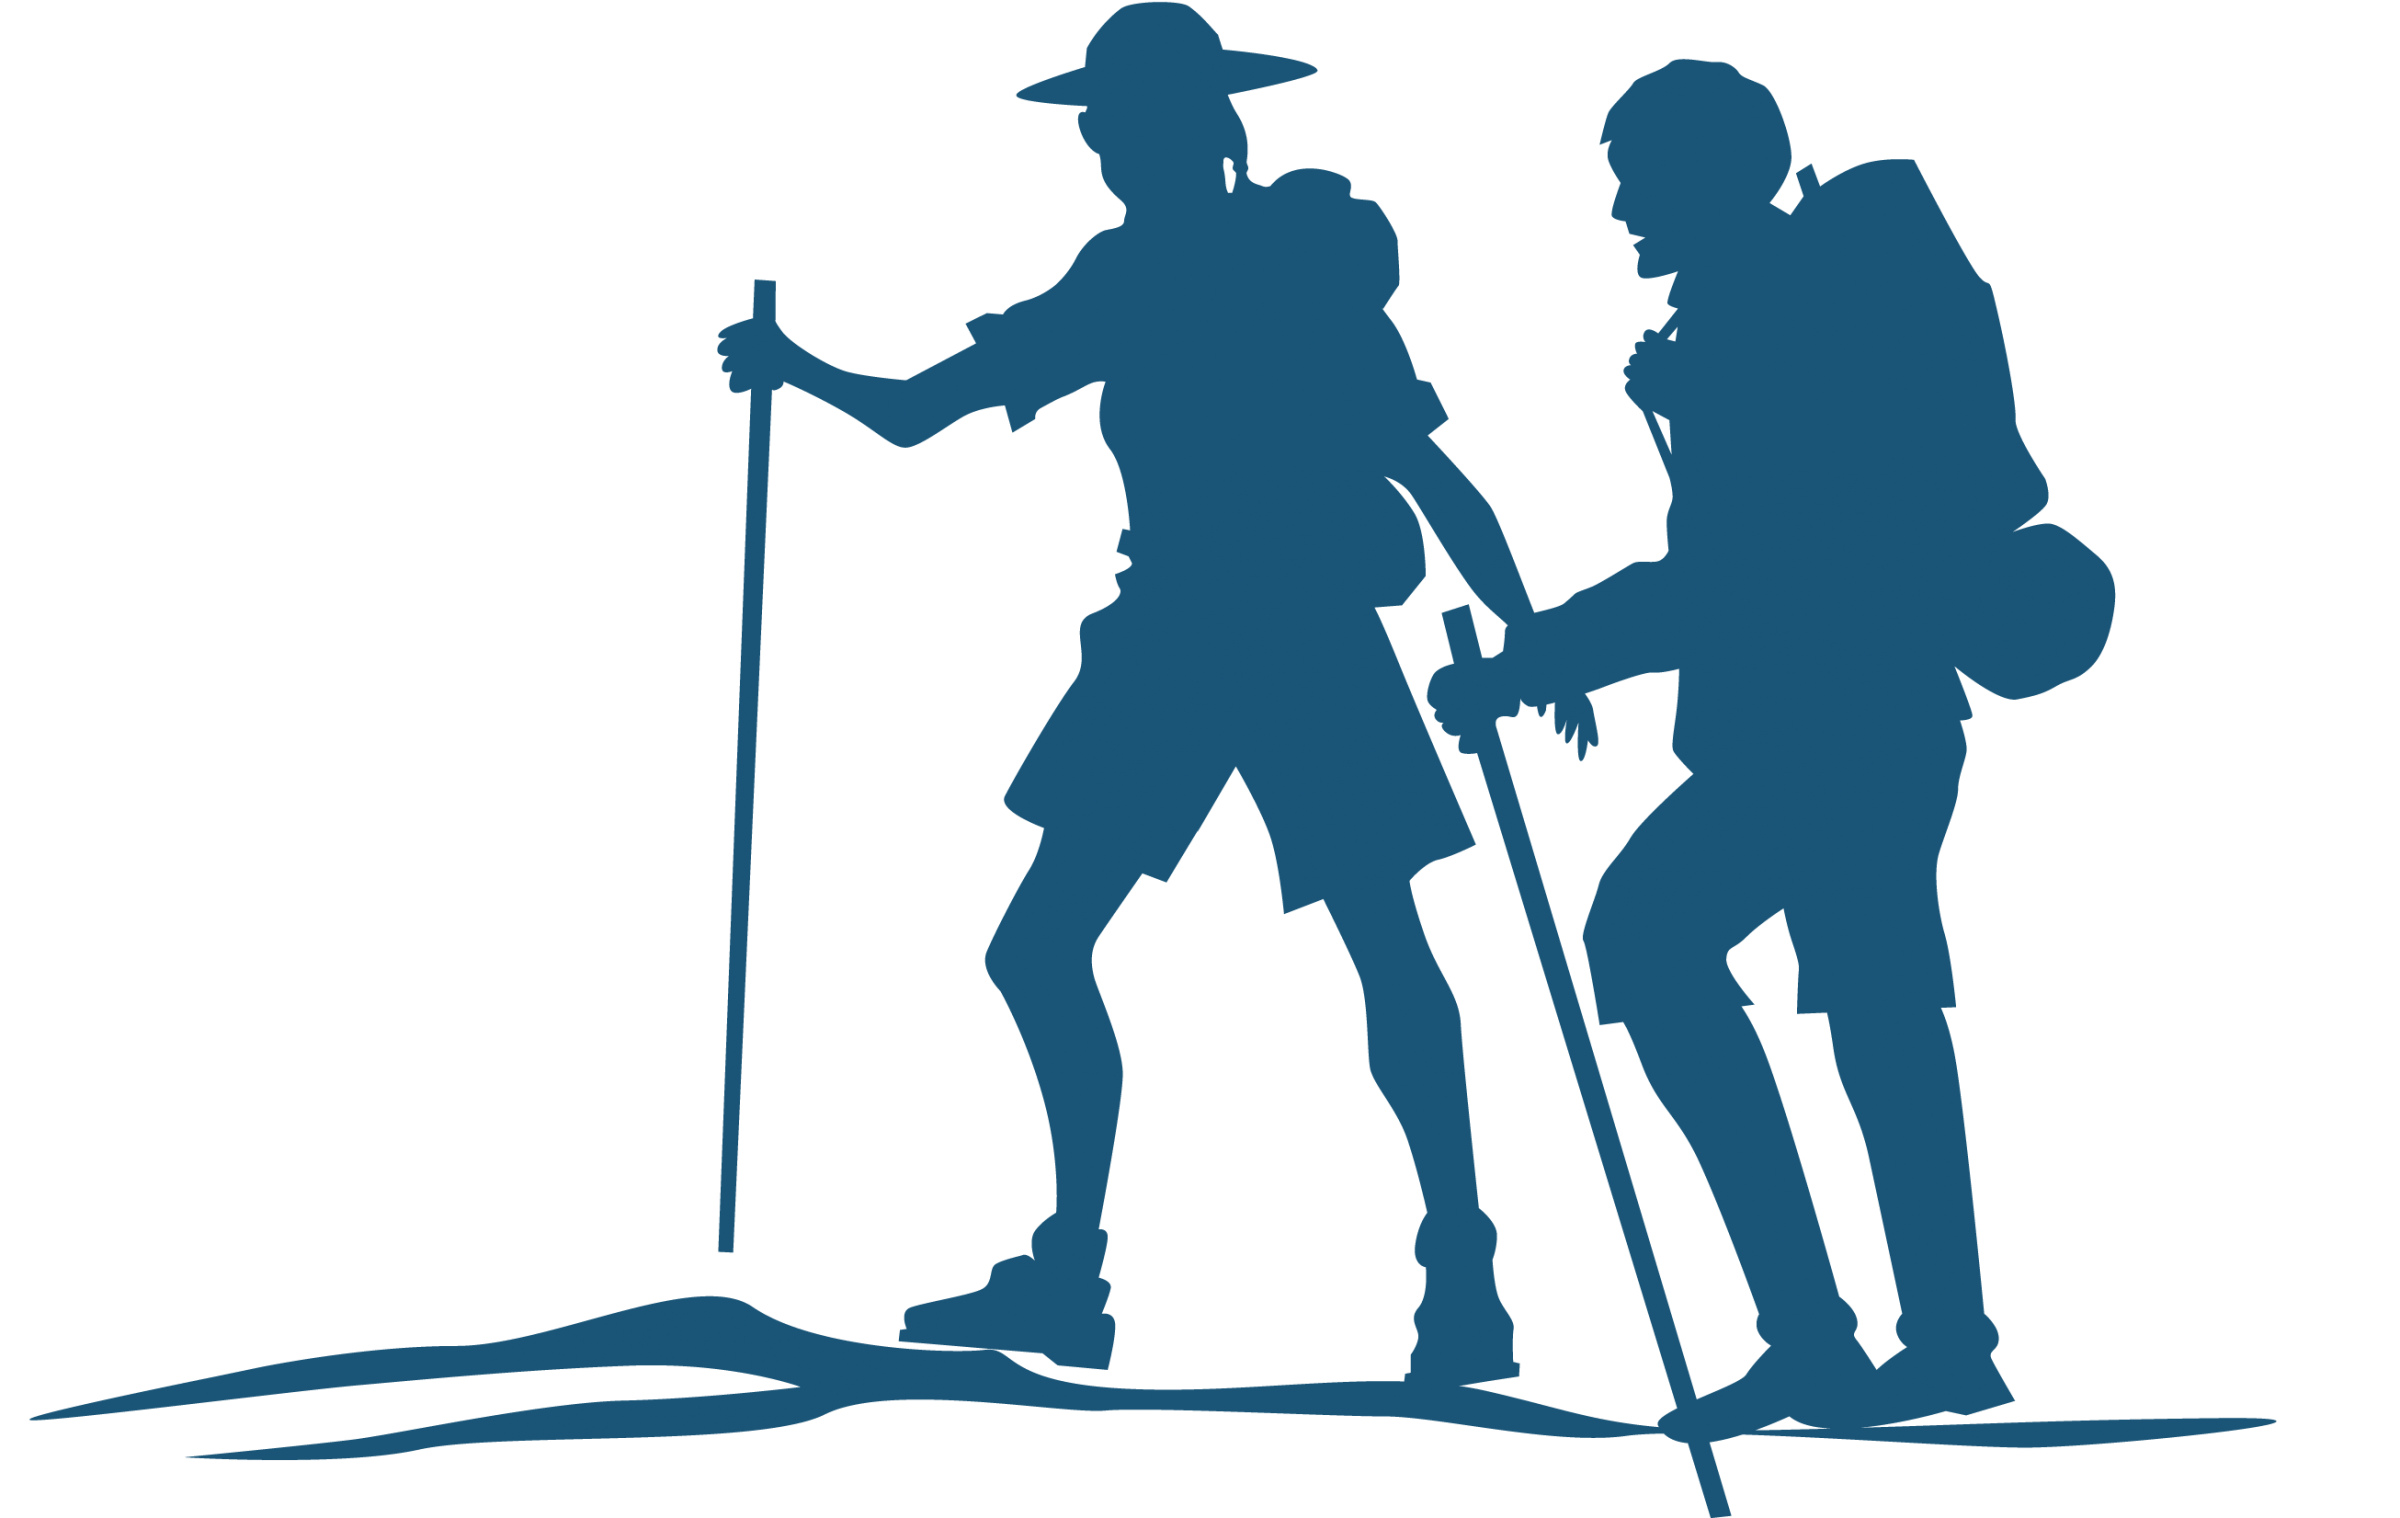 Hike clipart wandered.  explore and restore